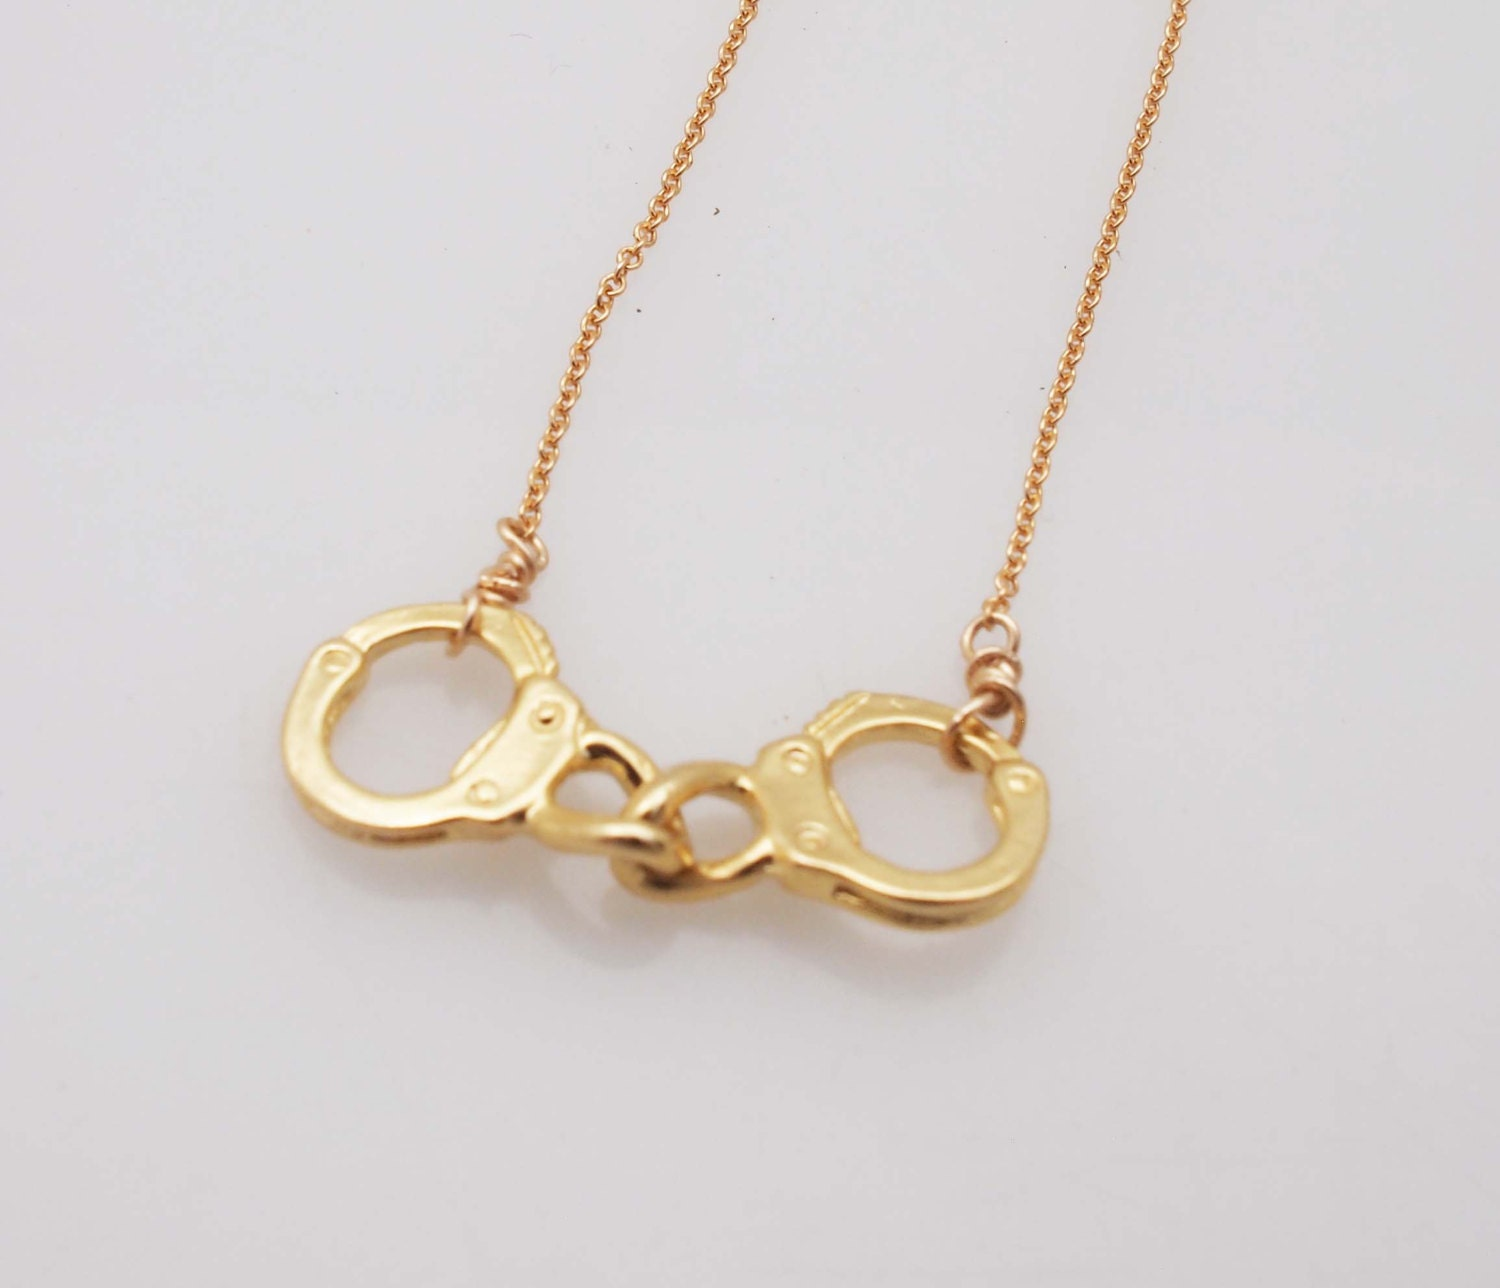 Handcuff Necklace Gold: Necklace-Gold Handcuffs Necklace By Madredeolivia On Etsy